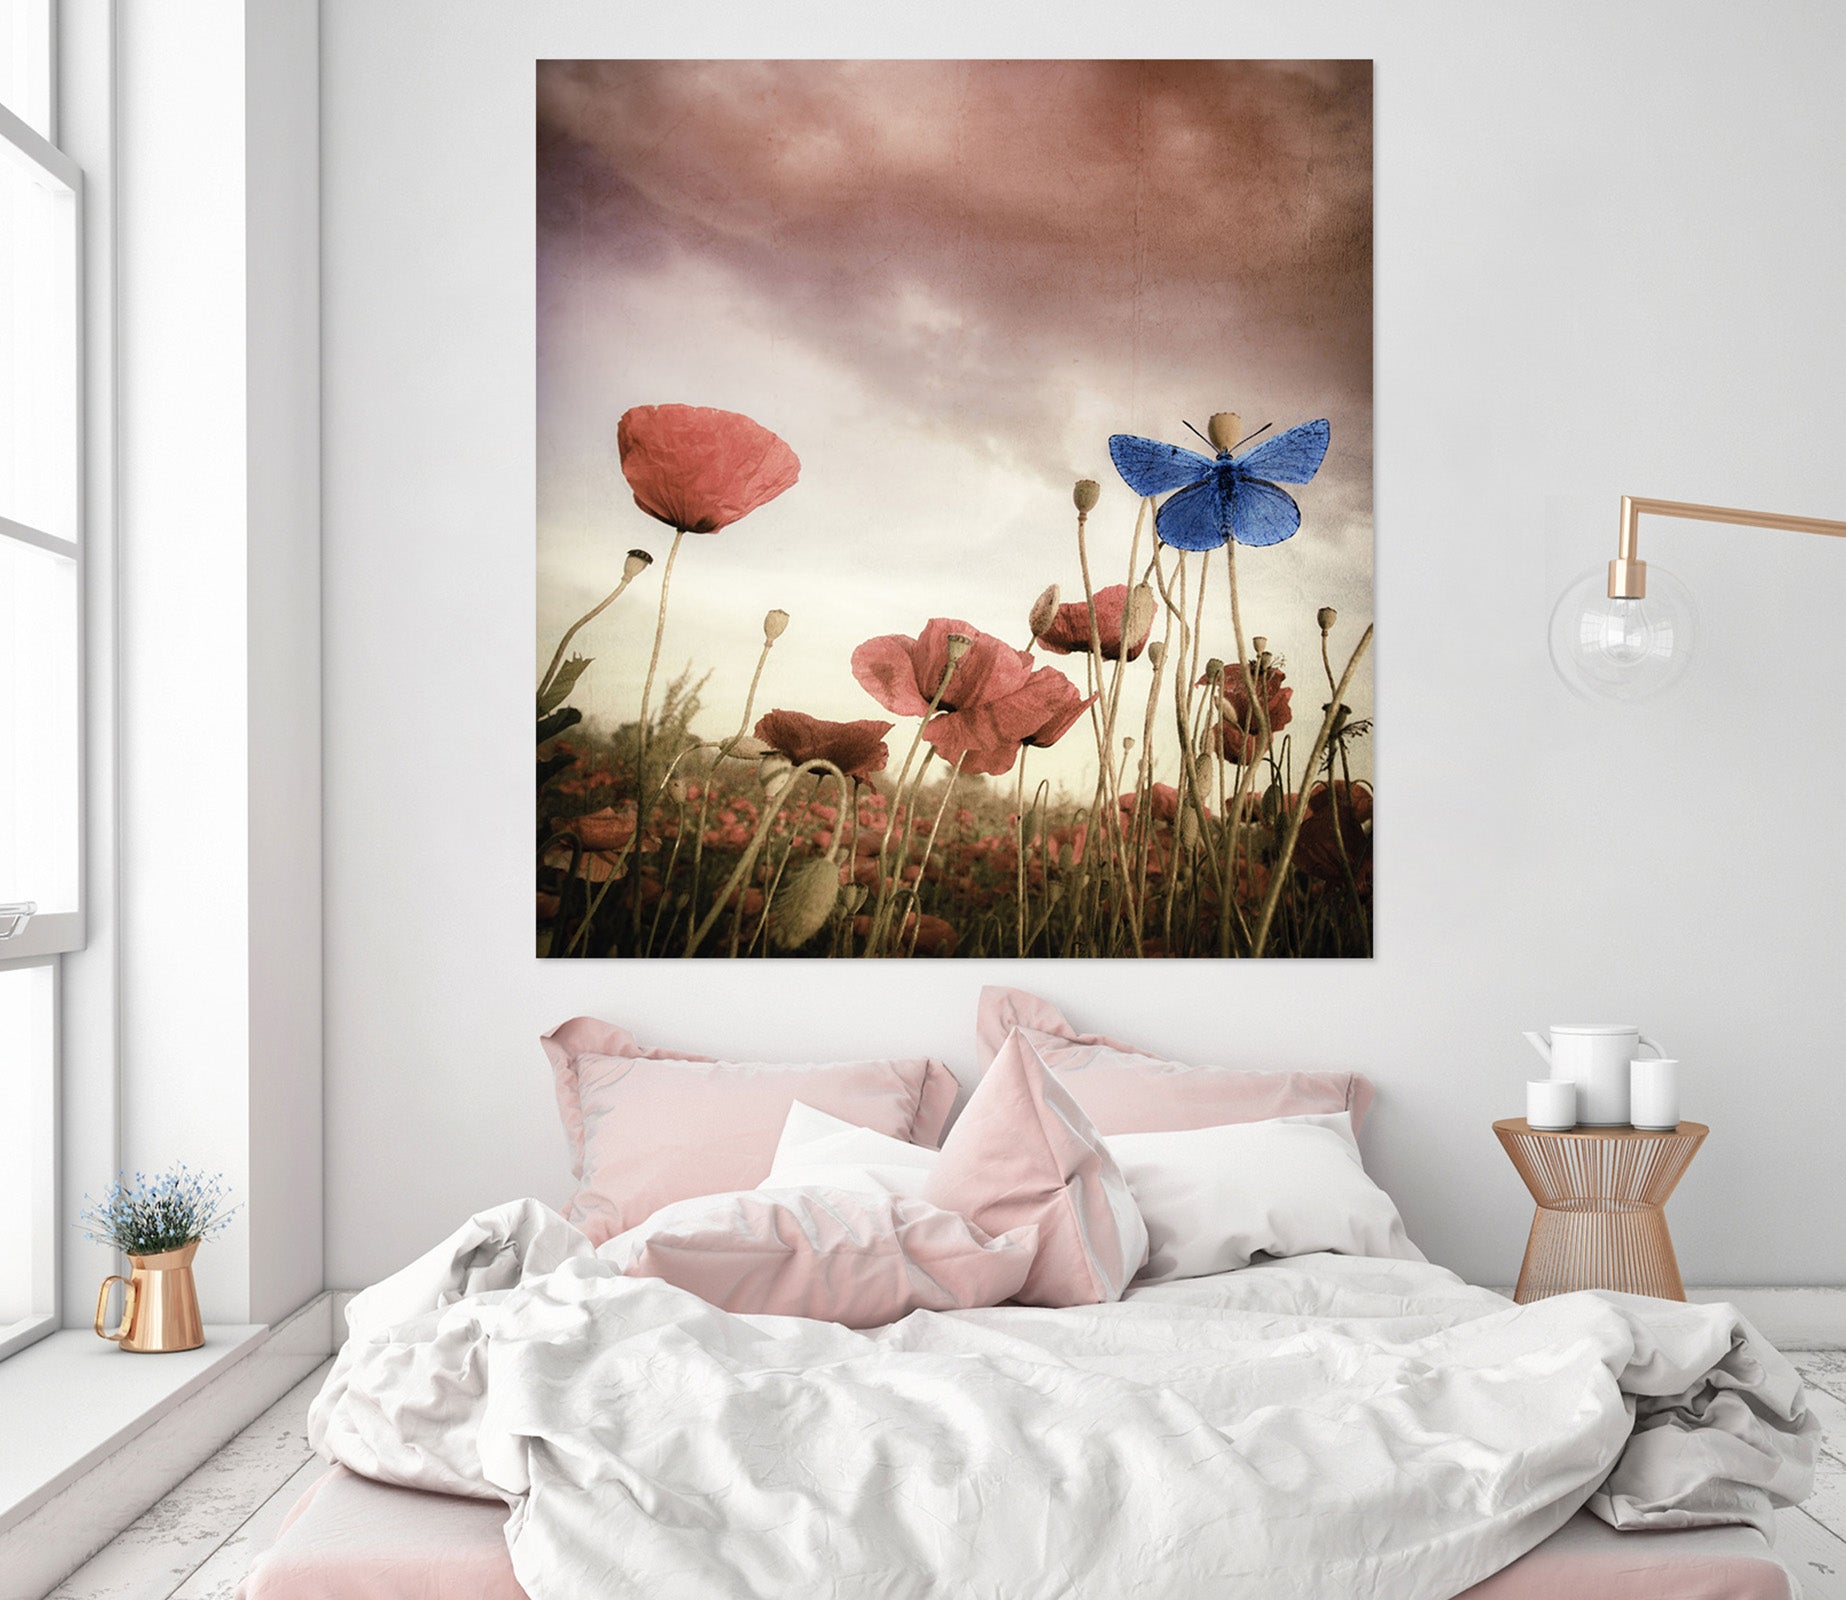 3D Prairie Flowers 233 Marco Carmassi Wall Sticker